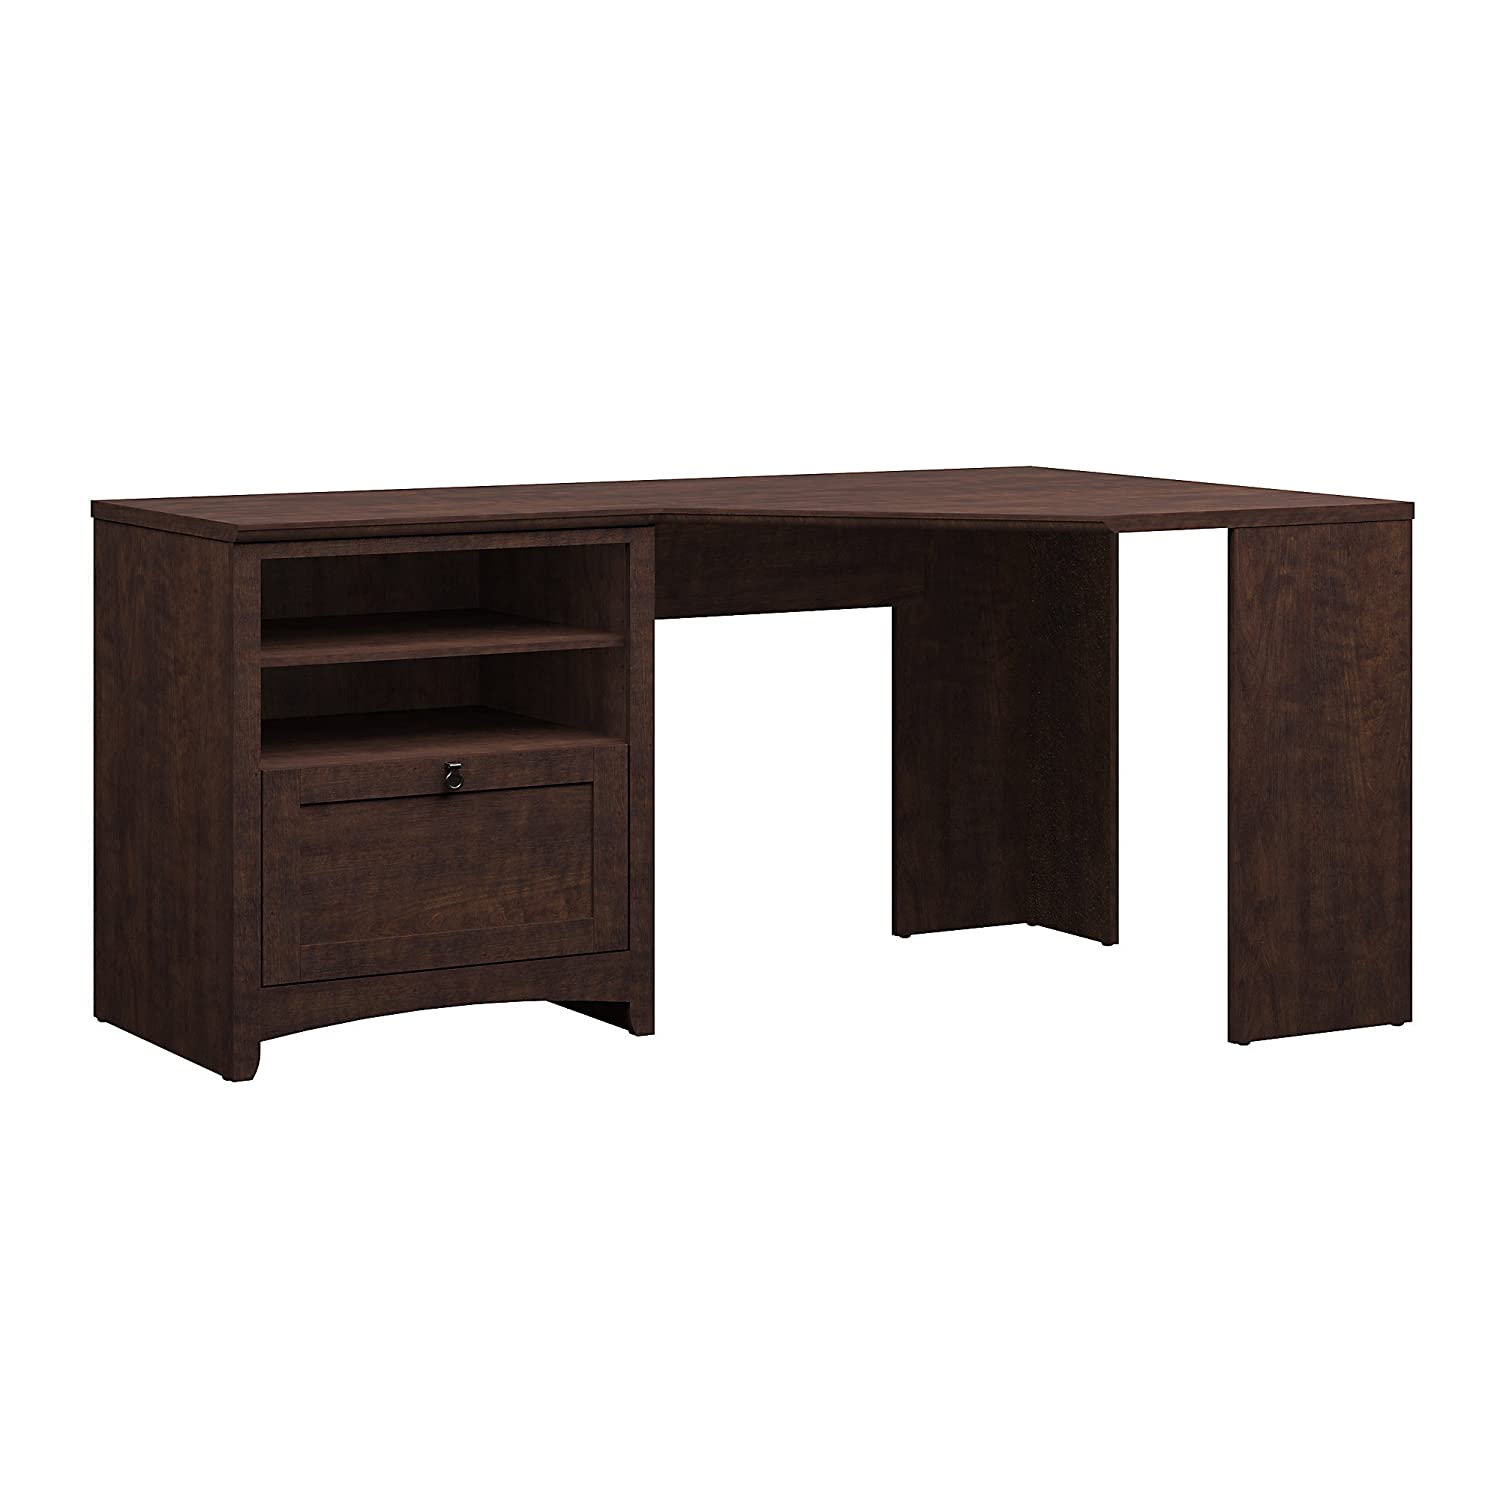 Bush Furniture Buena Vista 60W Corner Desk with Storage in Madison Cherry